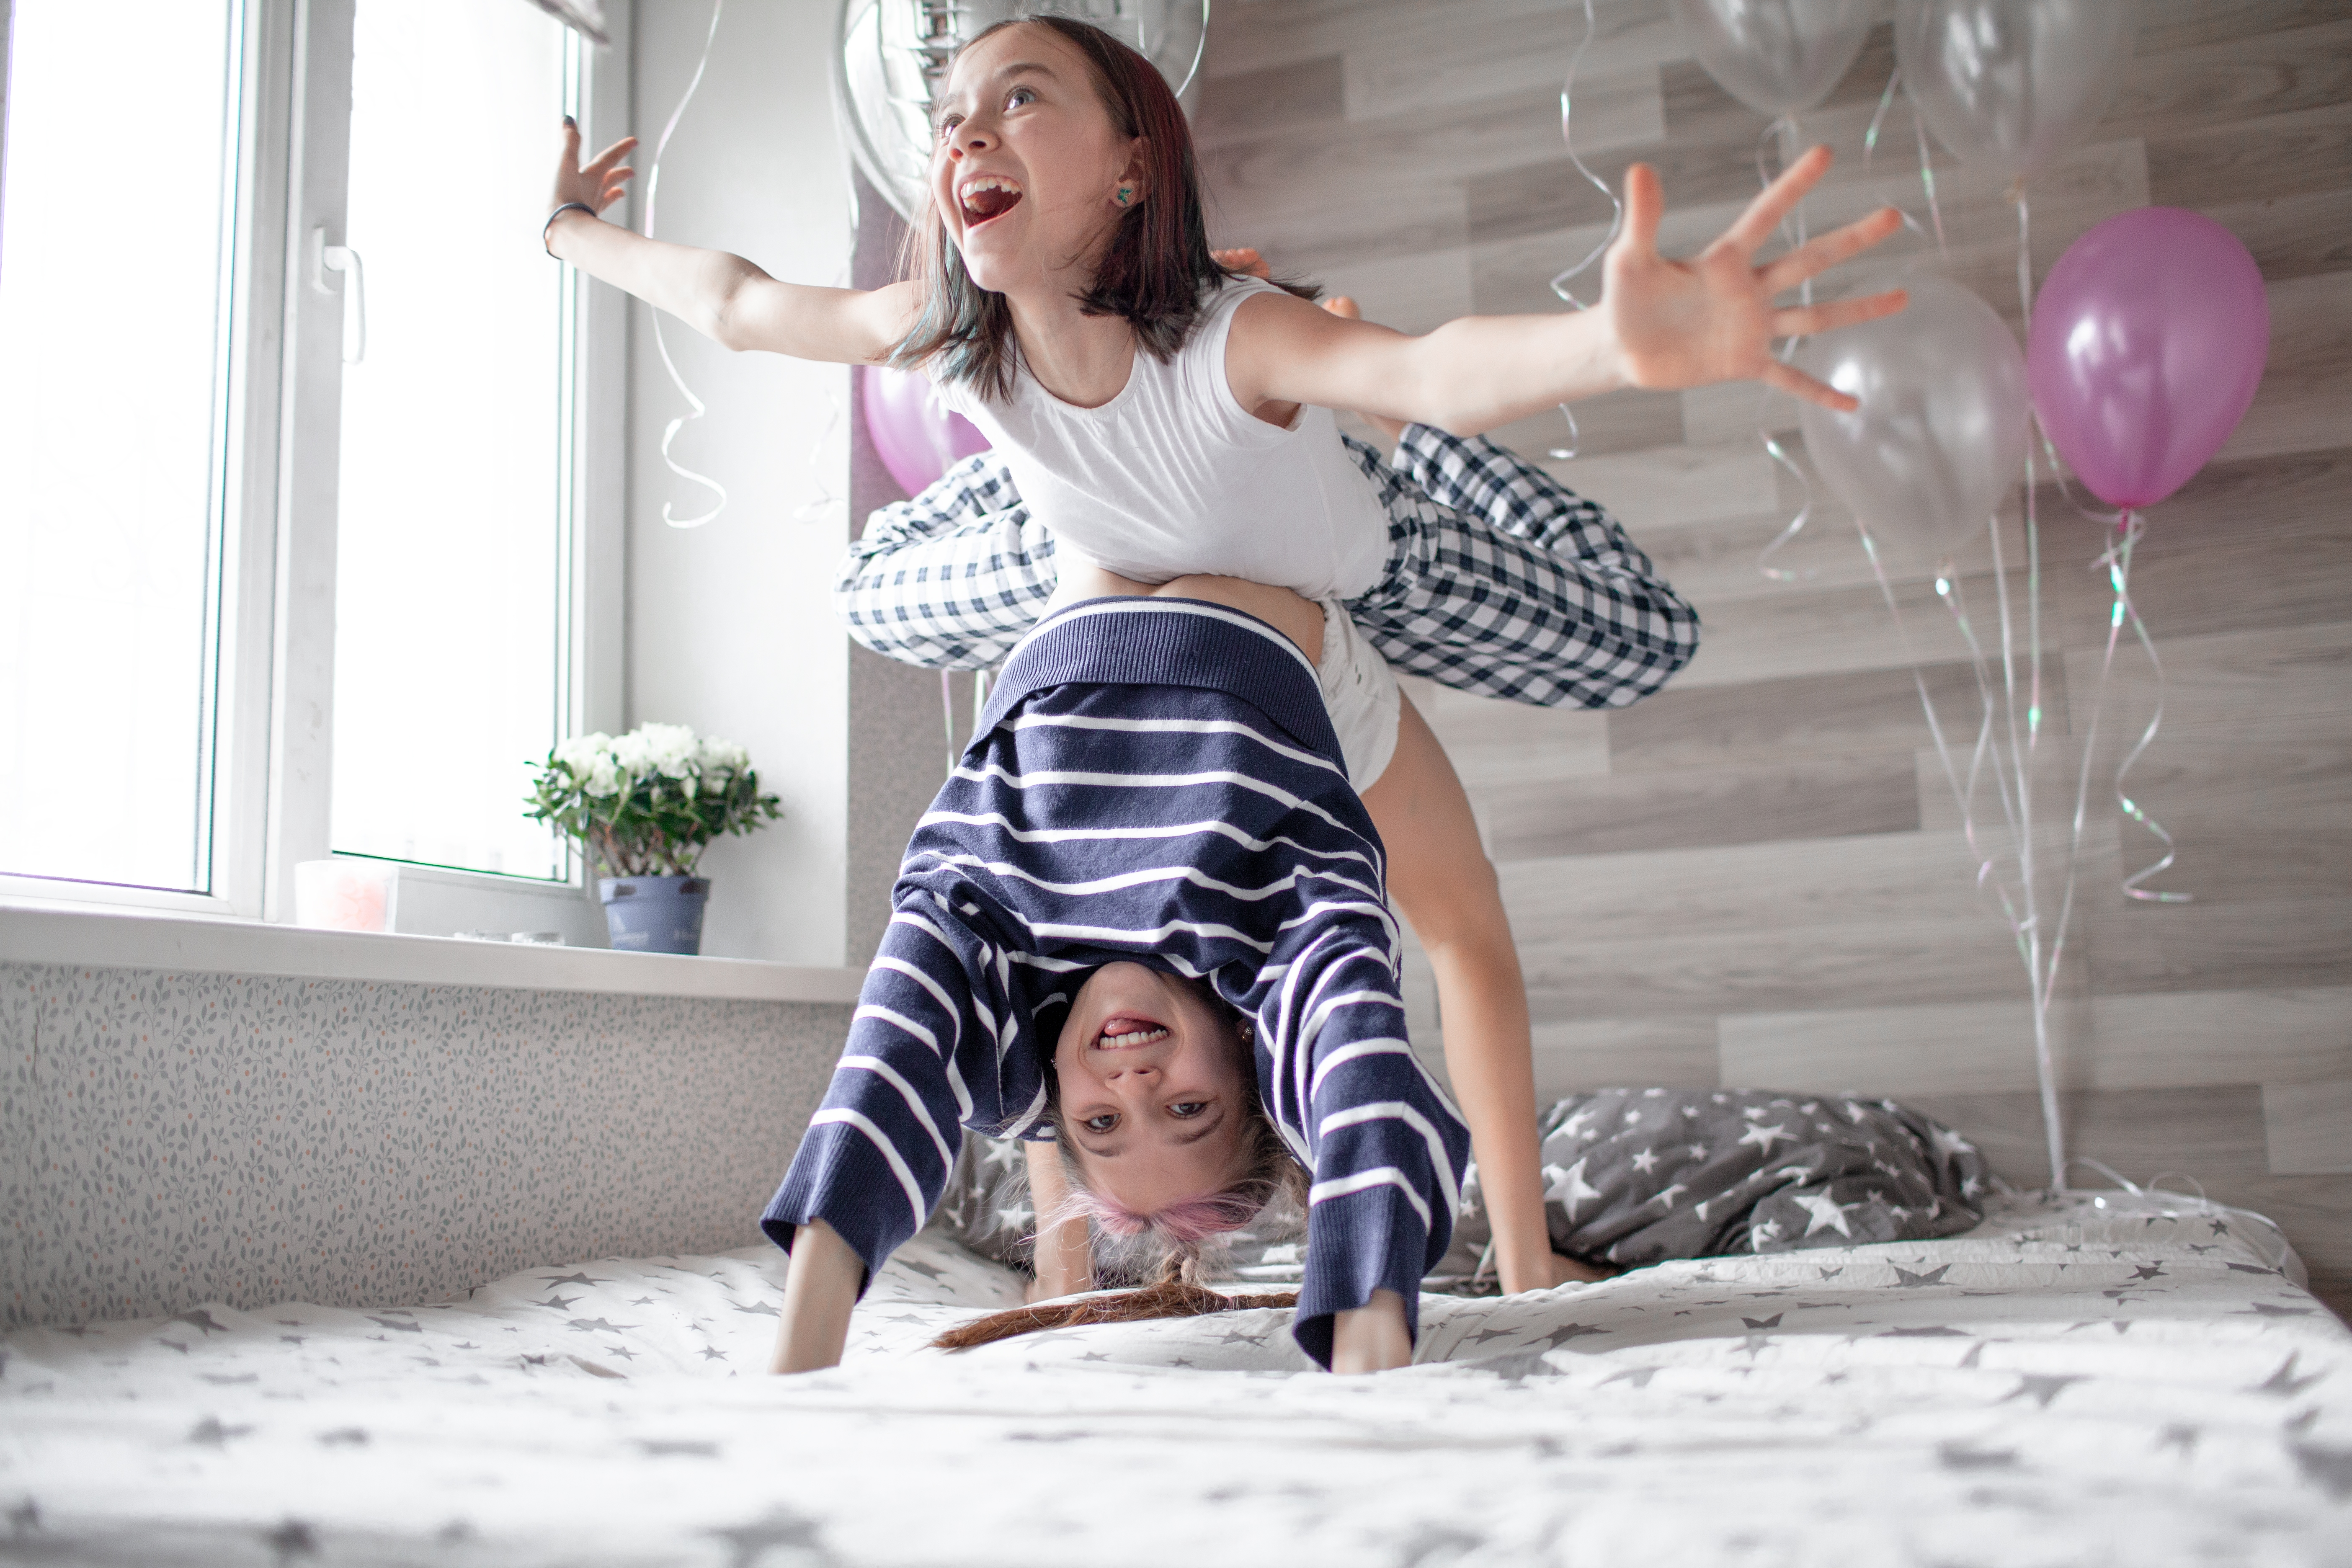 13 Extremely Fun Sleepover Ideas For 8-Year-Olds